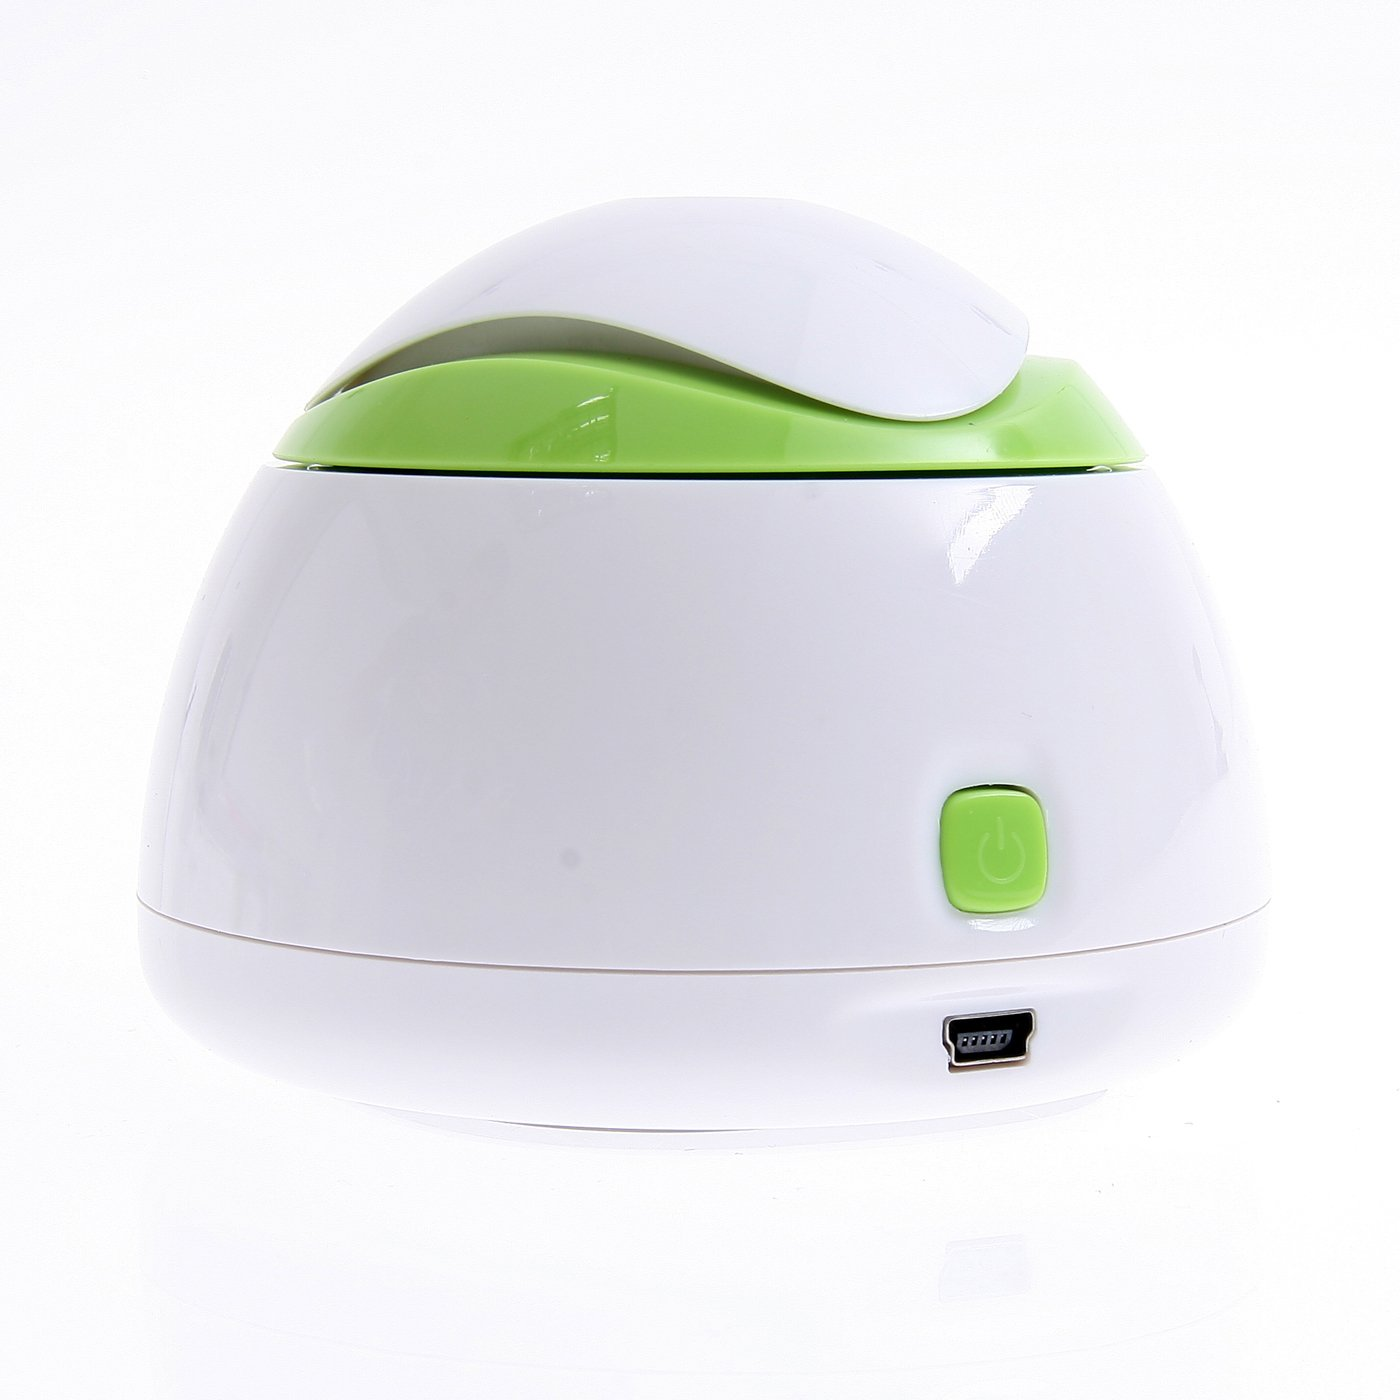 Creative Portable 5V Ultrasonic Humidifier Mini USB Air Humidifier Aromatherapy Machine Aroma Diffuser For Home Office floor style humidifier home mute air conditioning bedroom high capacity wetness creative air aromatherapy machine fog volume